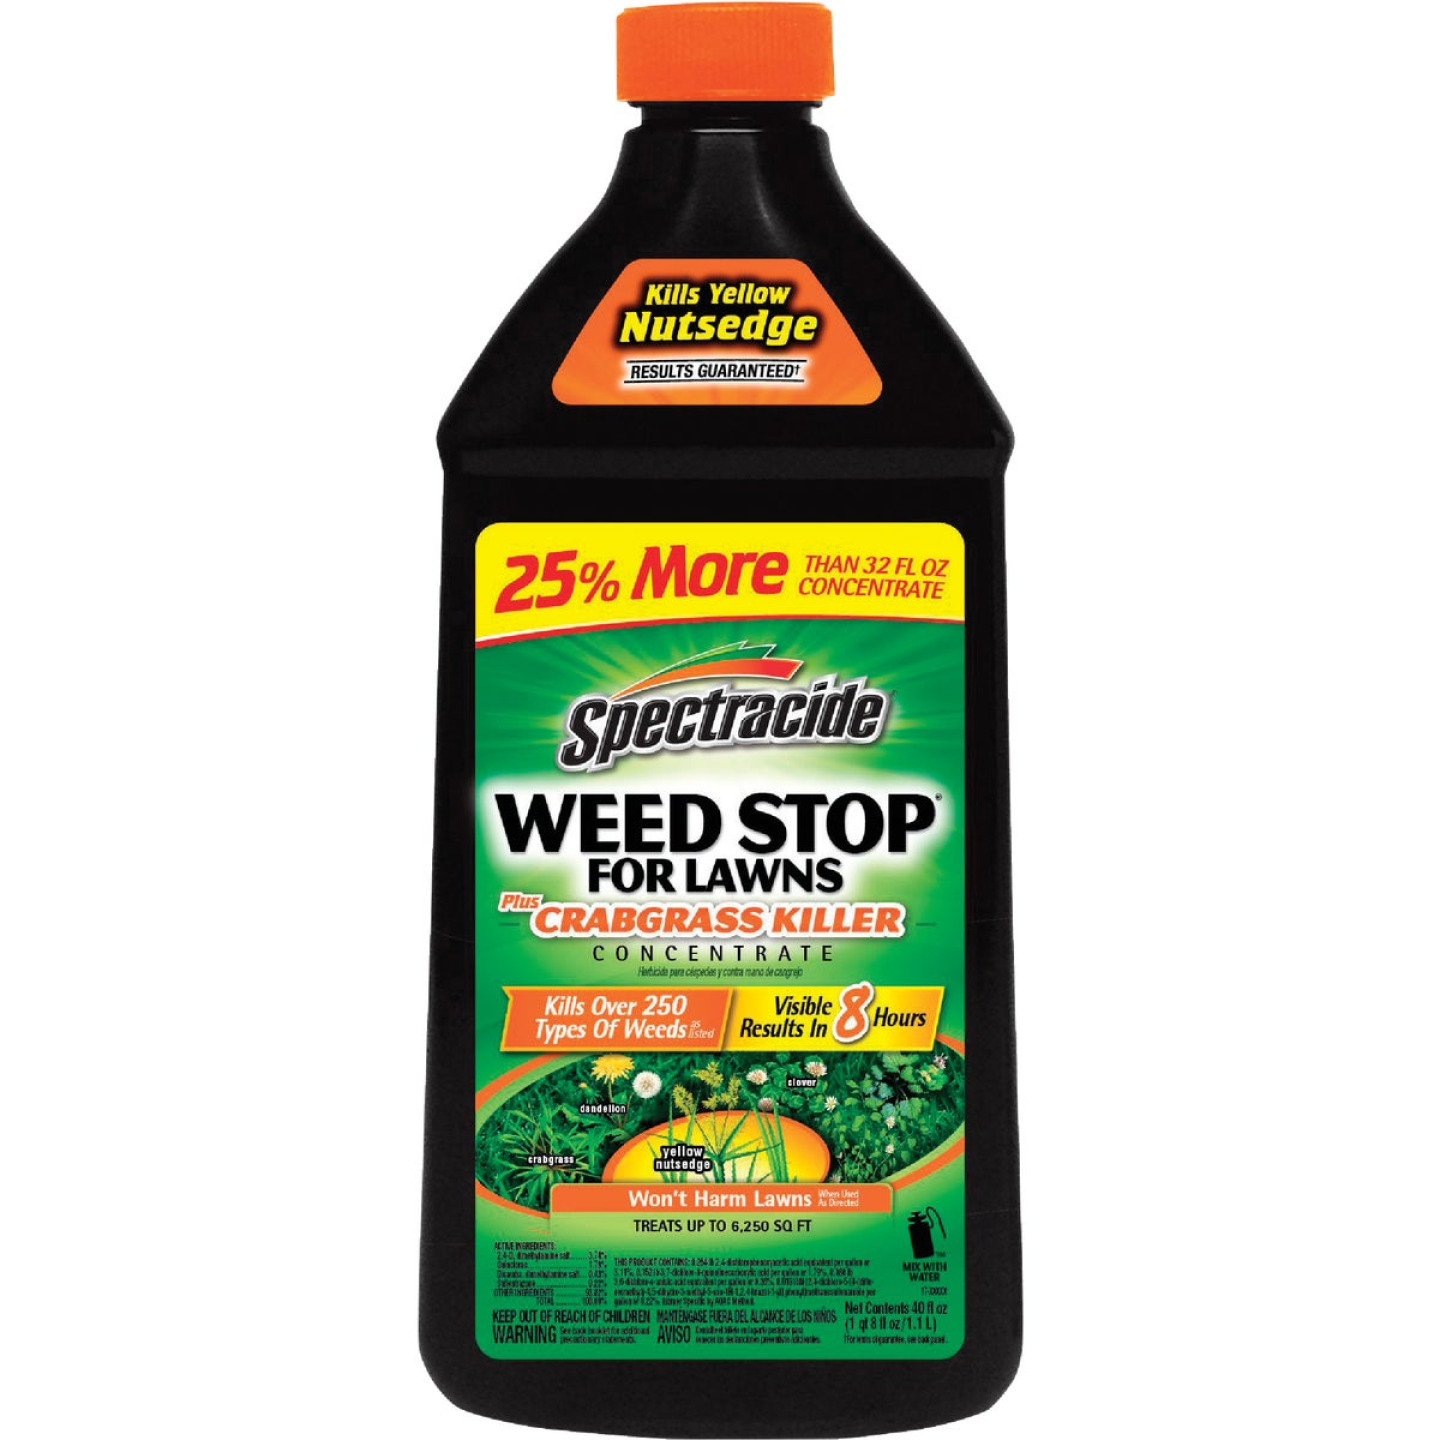 Spectracide Weed Stop 40 Oz. Concentrate Crabgrass & Weed Killer Image 1